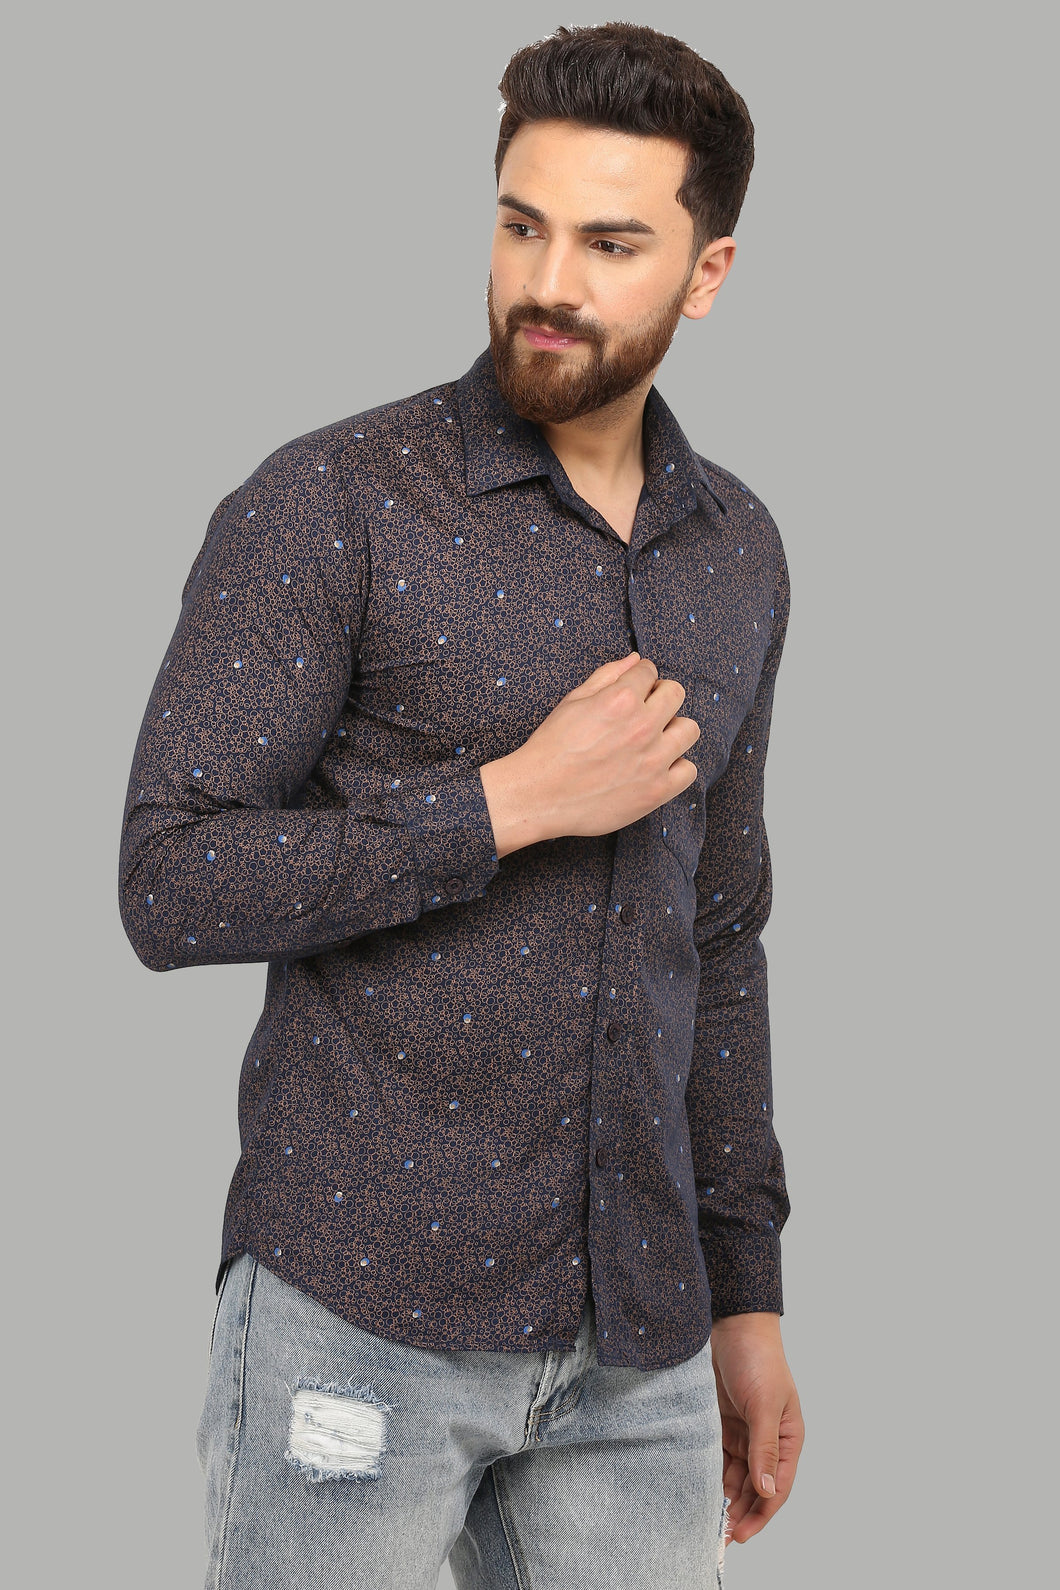 Paushaak New Designer Slim Fit Shirt (PKA17)